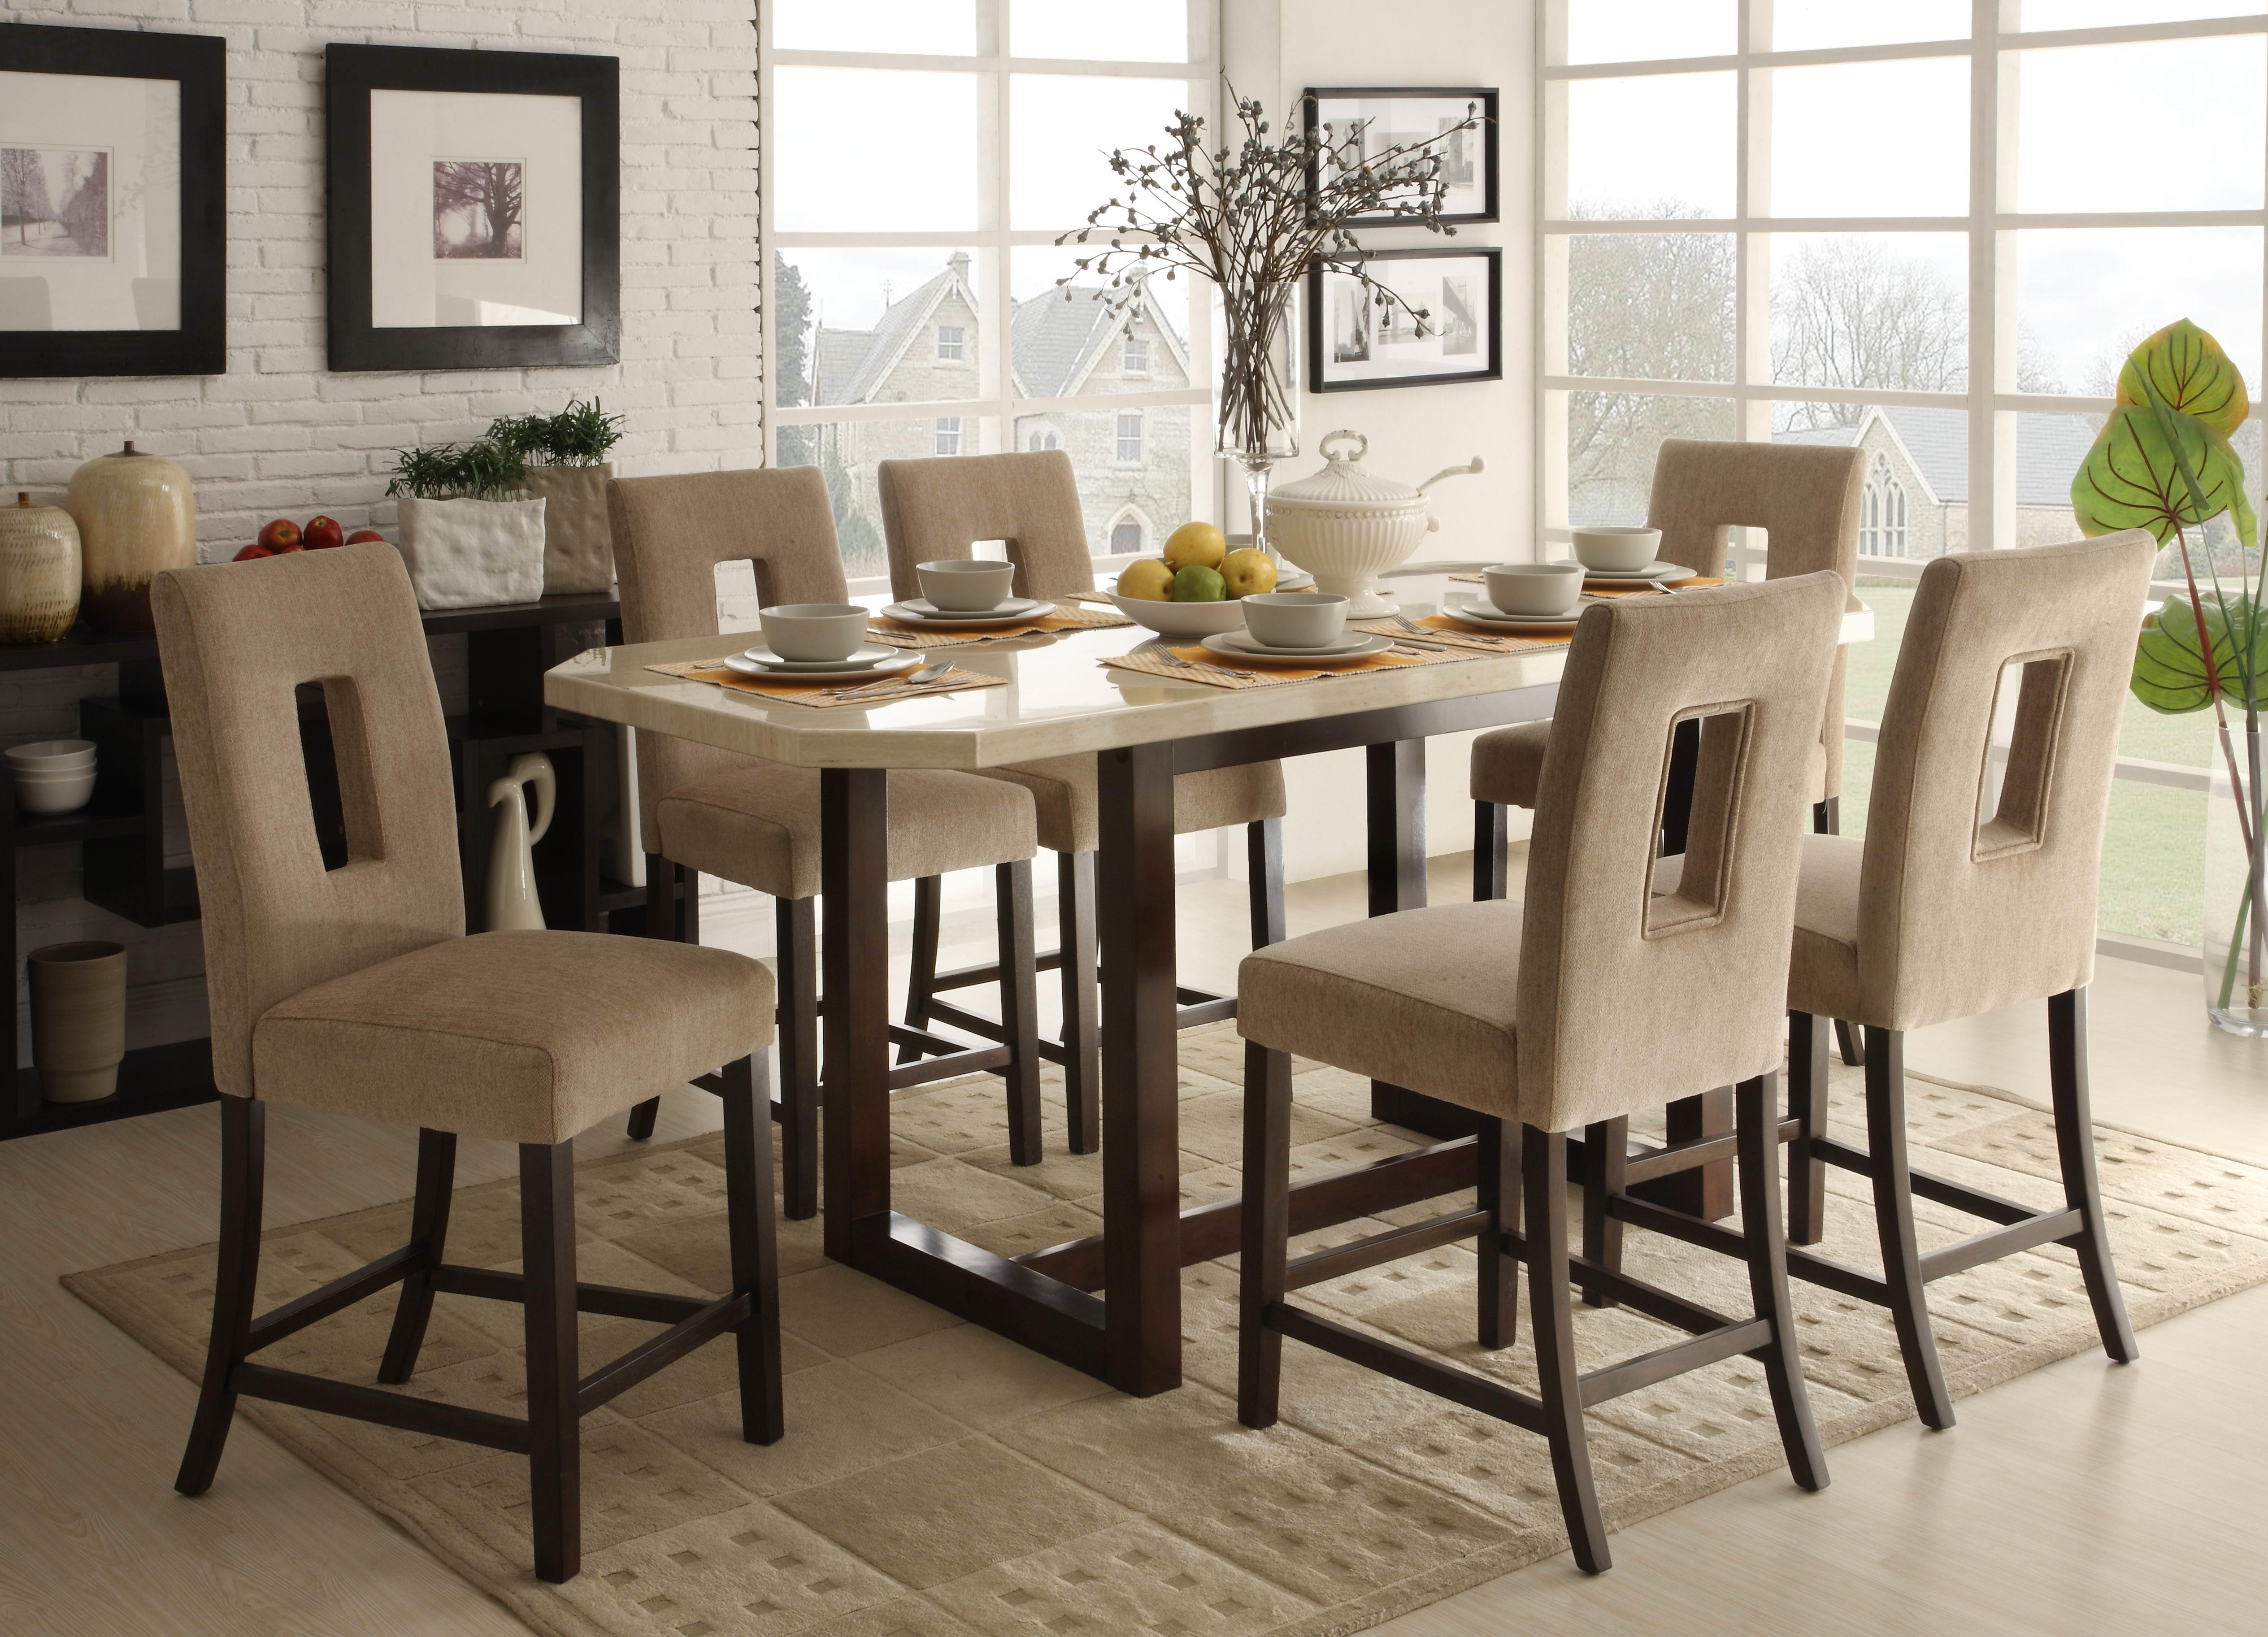 Dining Room Chair Table Chairs High Top Table Set High Top Table ...